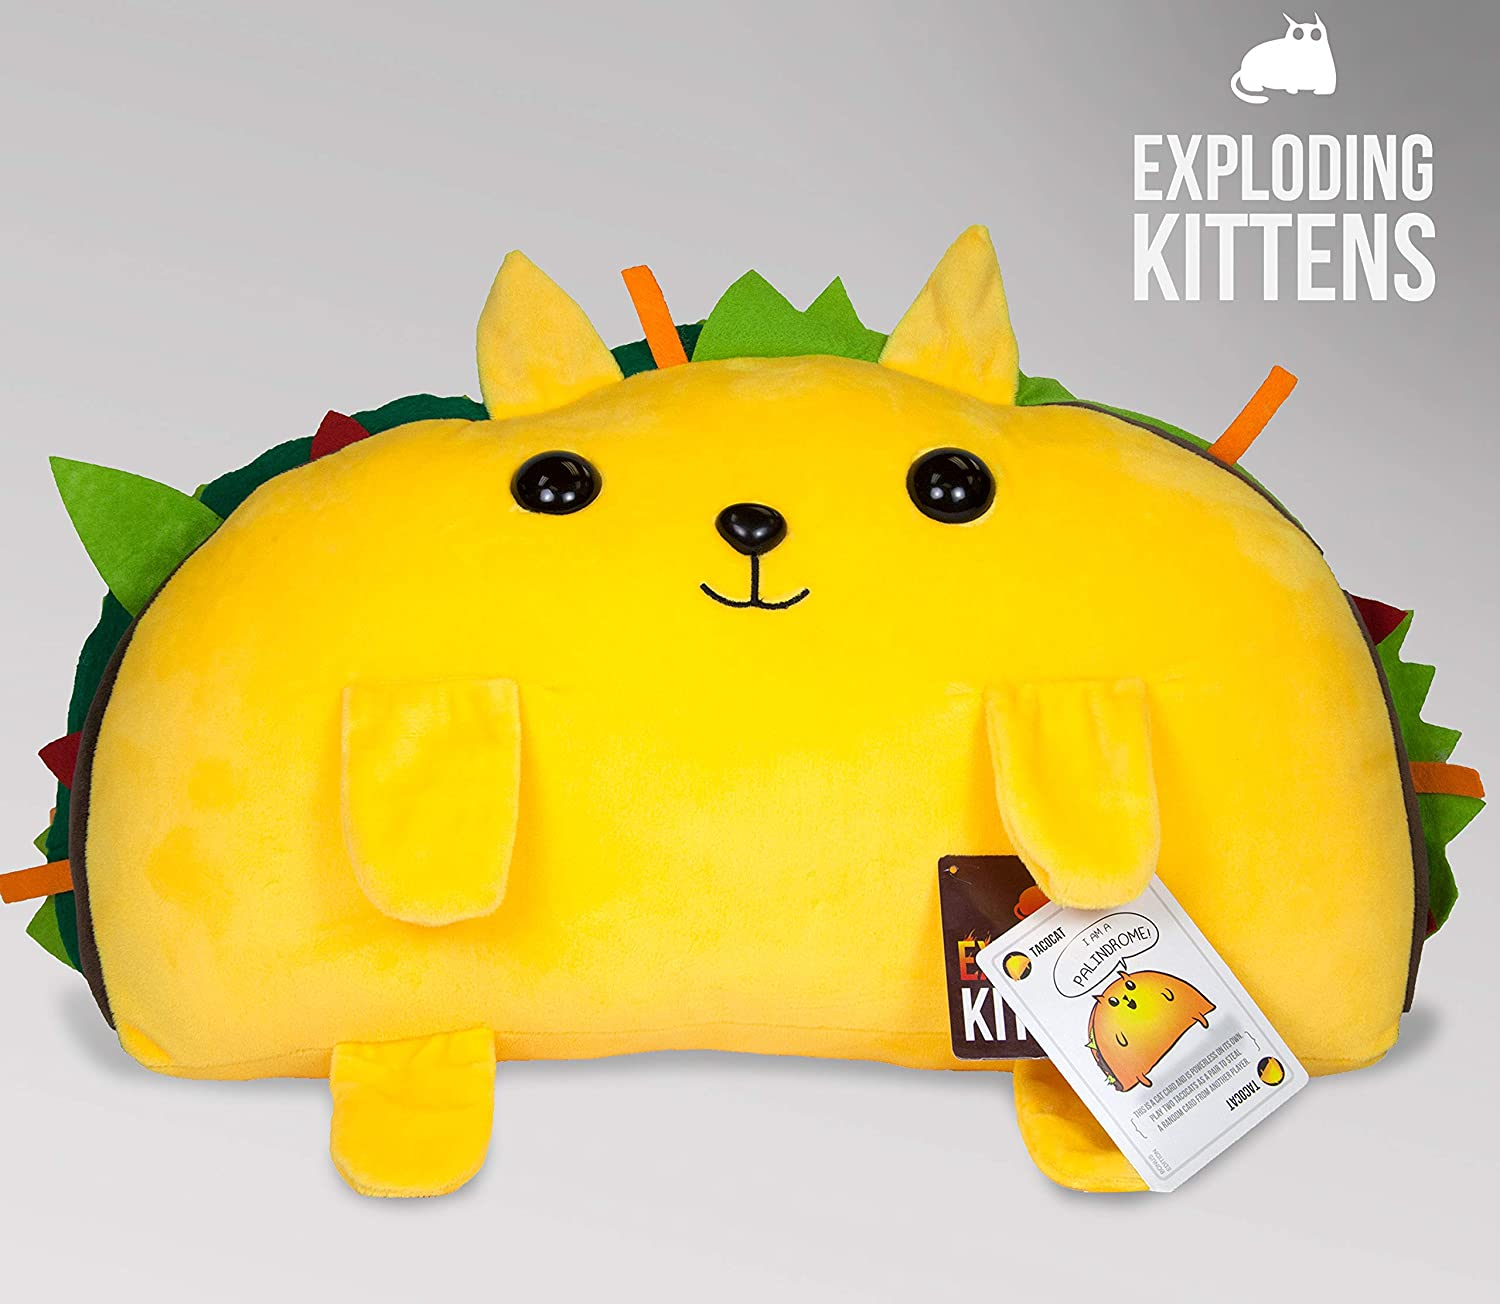 Basic Fun Exploding Kittens Tacocat Jumbo Super Soft Plush